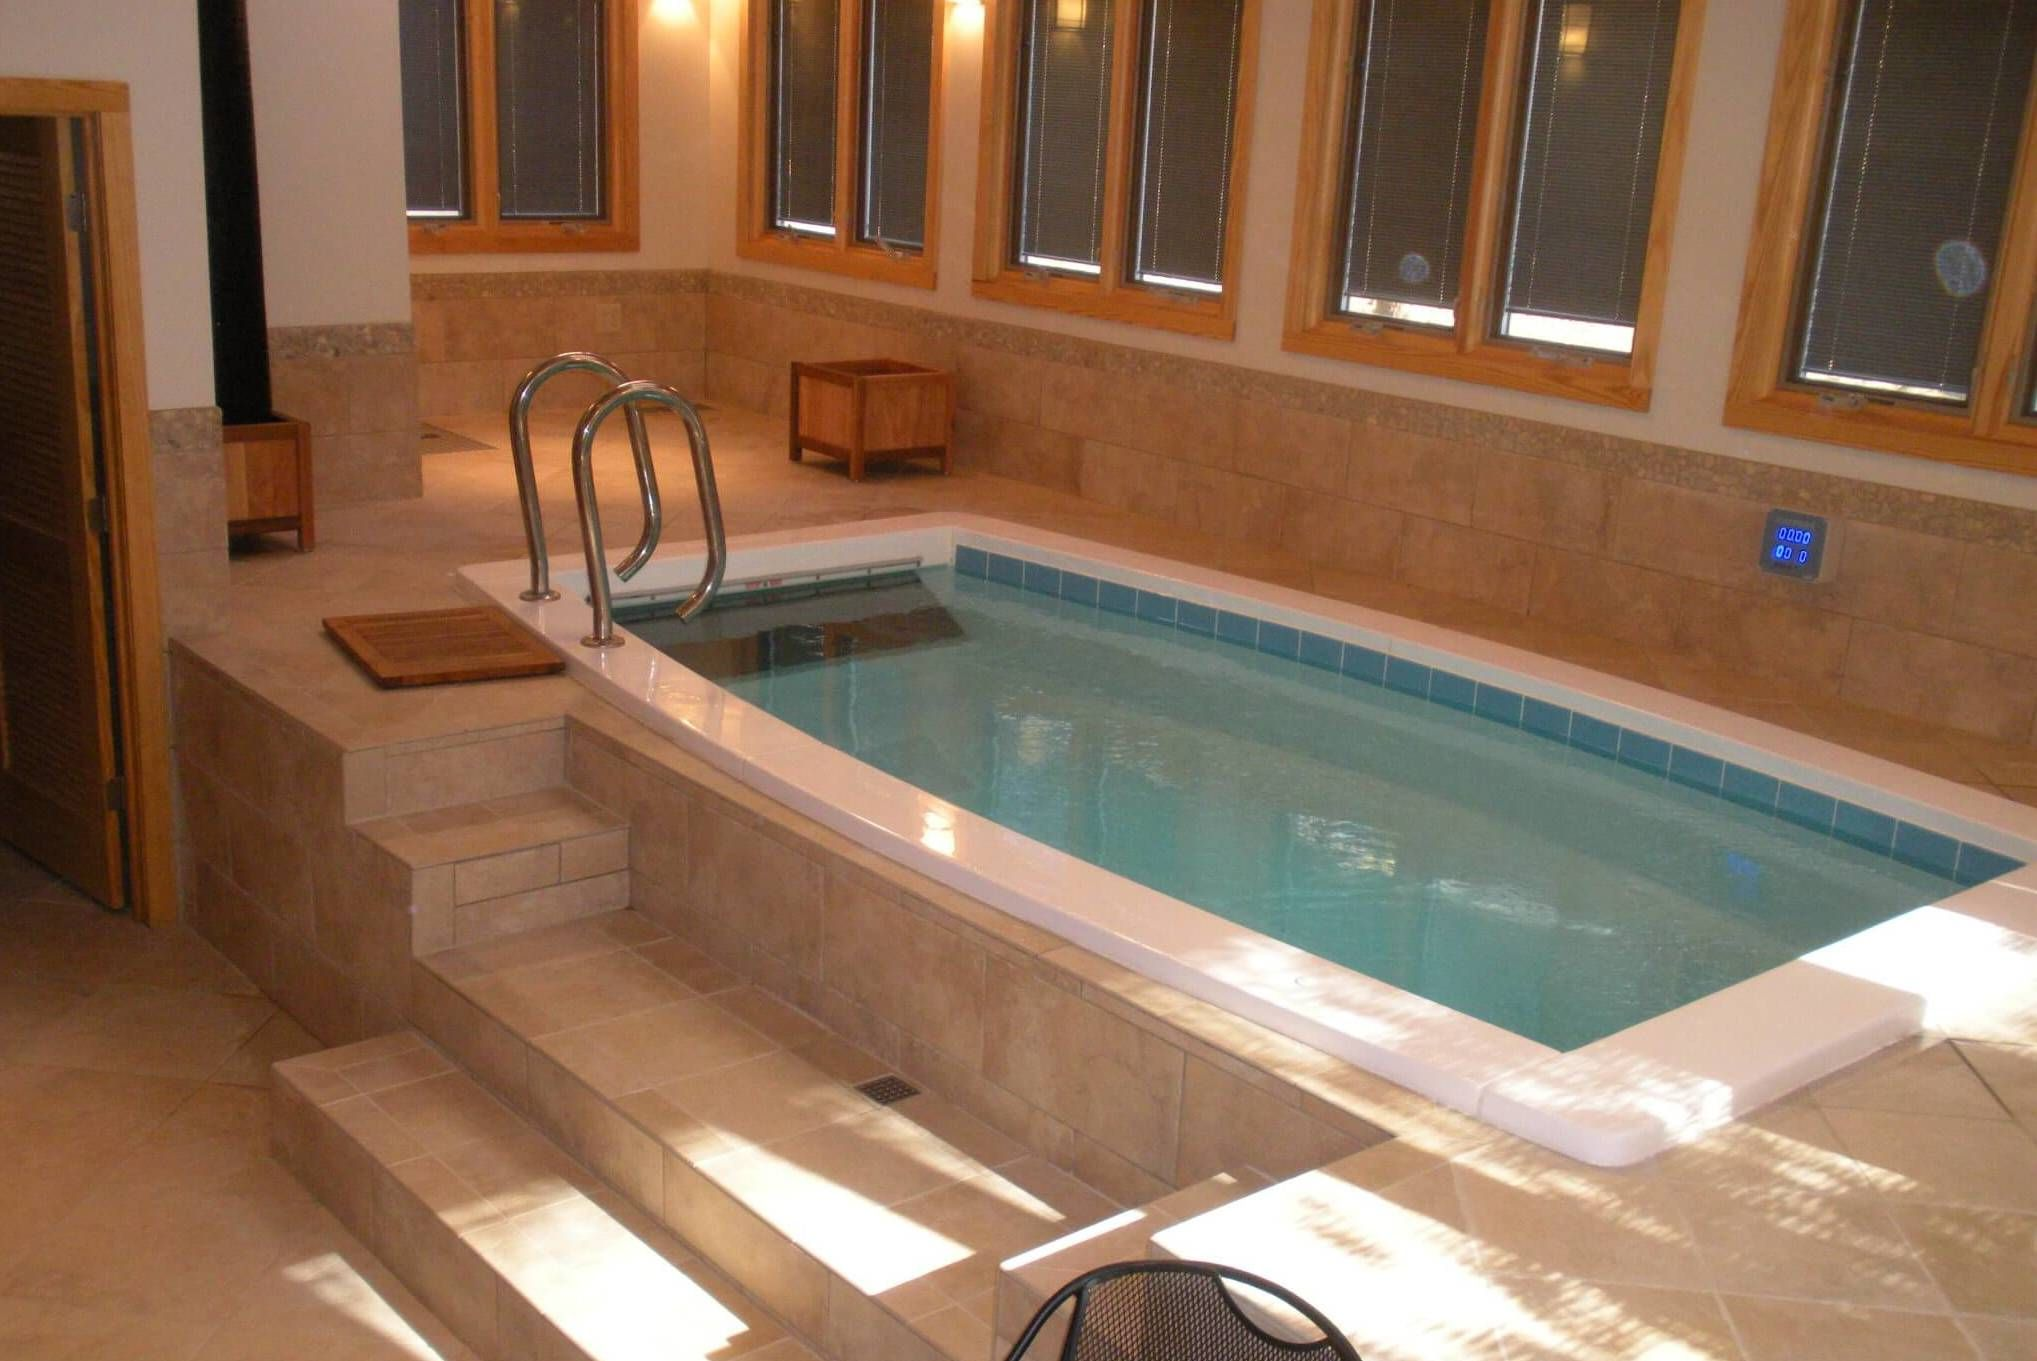 600 S Series | Spa, Endless pools and Spa rooms